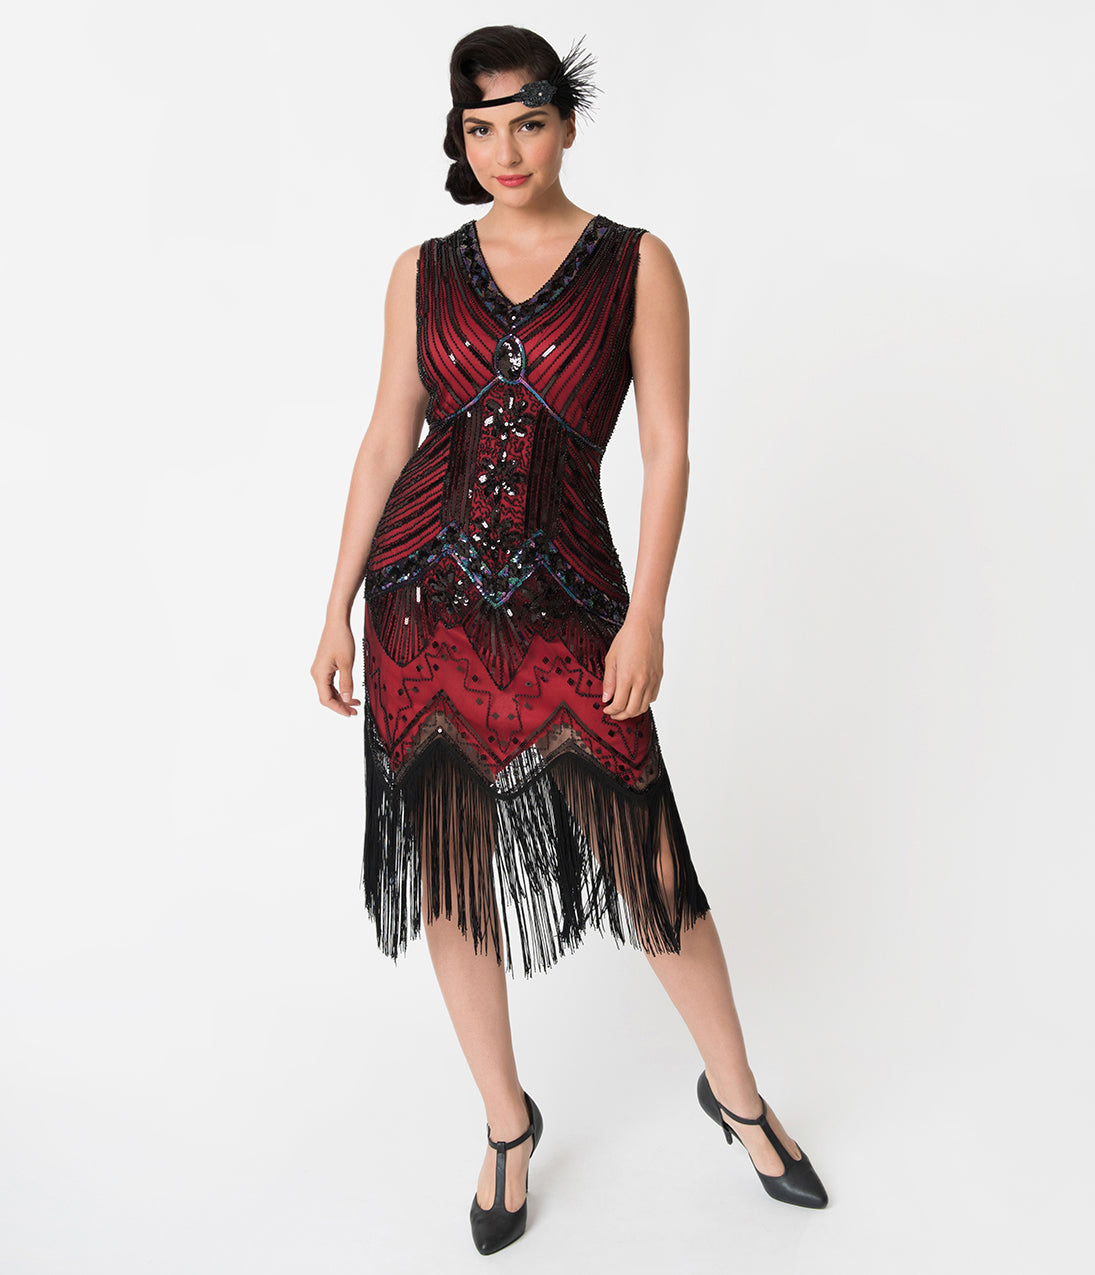 Flapper Costumes, Flapper Girl Costume Unique Vintage 1920S Deco Red  Black Veronique Fringe Flapper Dress $98.00 AT vintagedancer.com